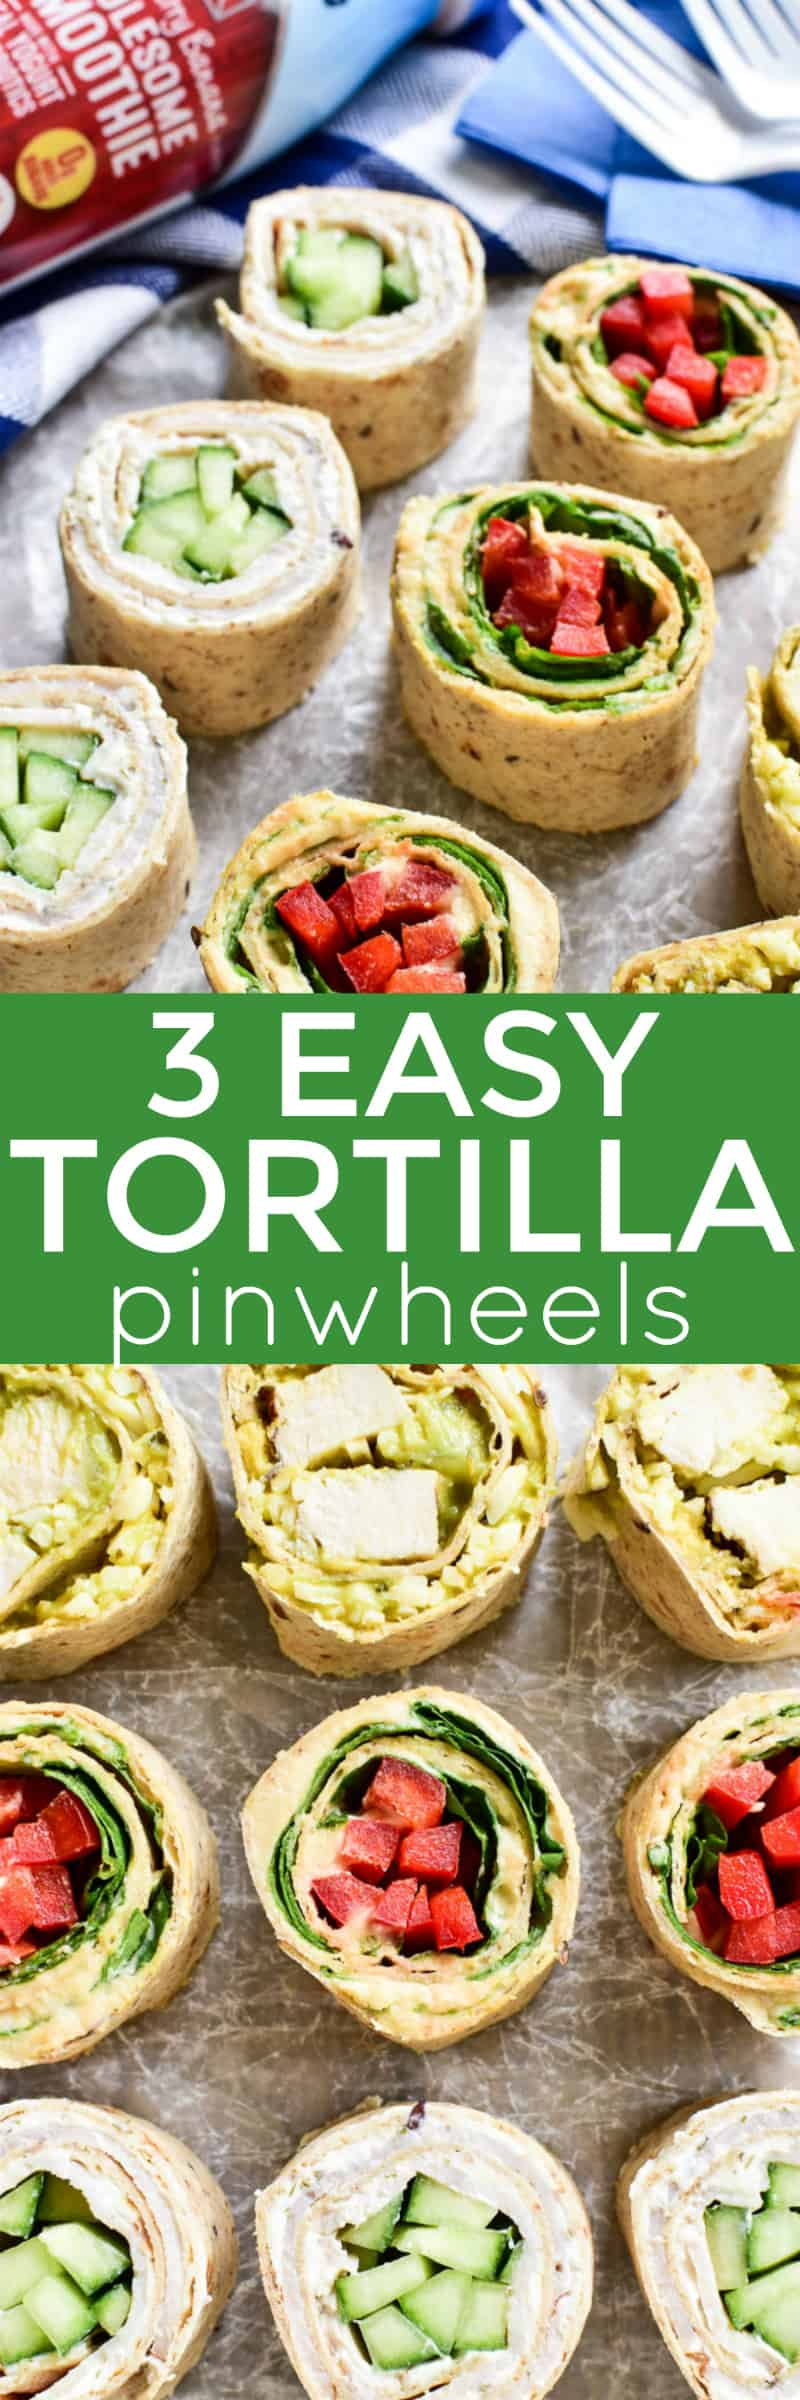 Tortilla Pinwheels make the perfect snack for busy summer days! They're healthy, satisfying, and can easily be made with any of your favorite ingredients.  These 3 easy pinwheel recipes are each made with just four ingredients, and they come together in no time at all. Just fill them, roll them, slice them, and they're ready to enjoy.  And....they pair perfectly with Live Real Farms Wholesome Smoothies for an easy snack or lunch on the go! #sponsored